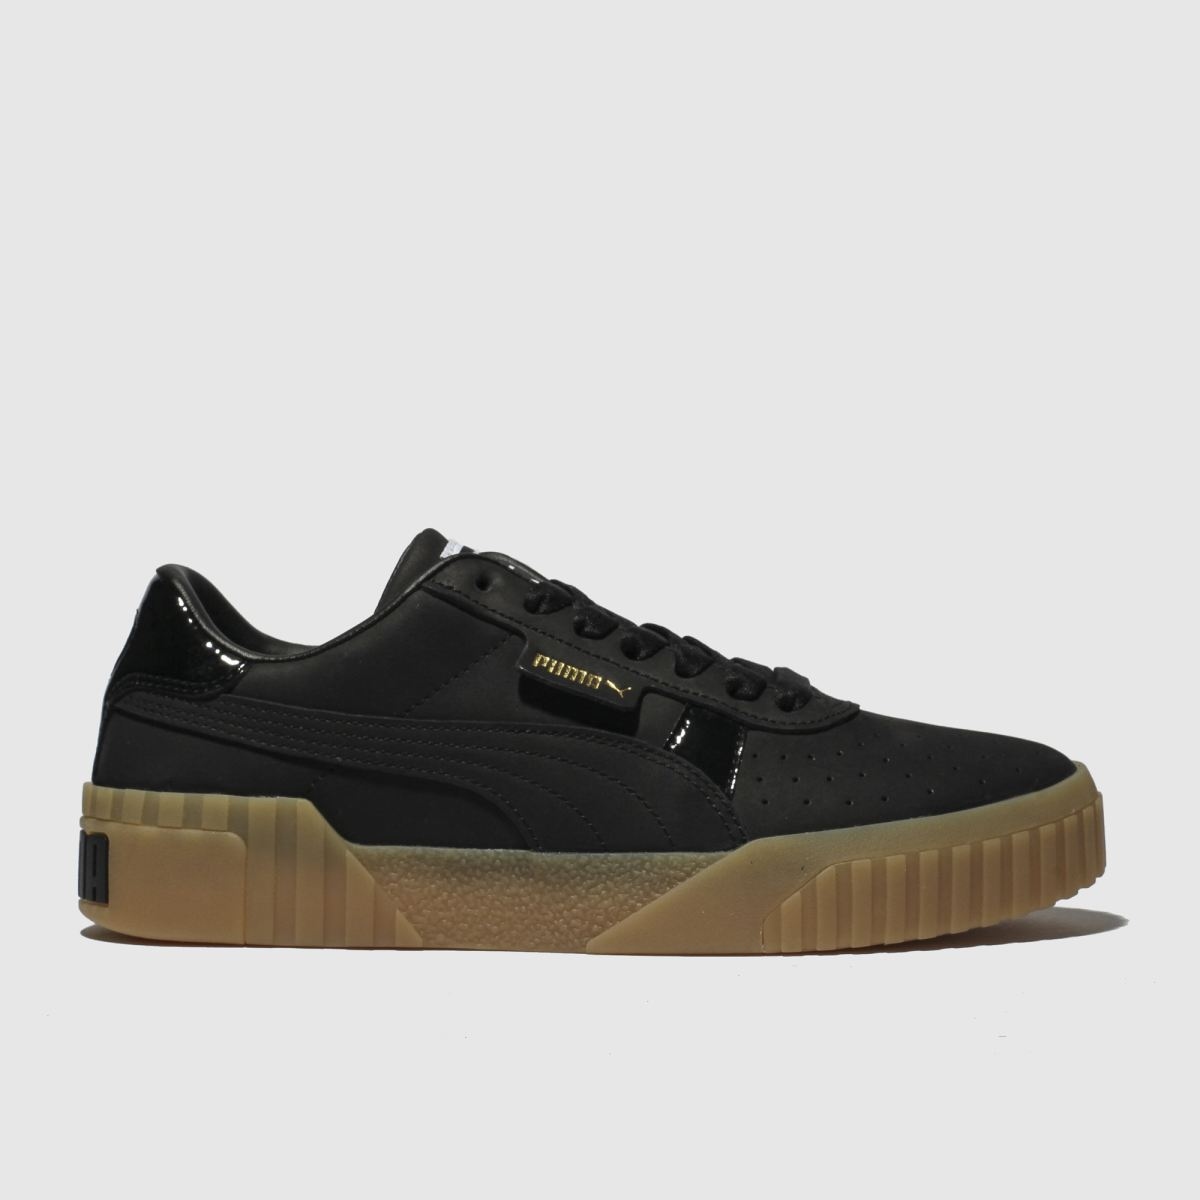 Puma Black & White Cali Nubuck Trainers